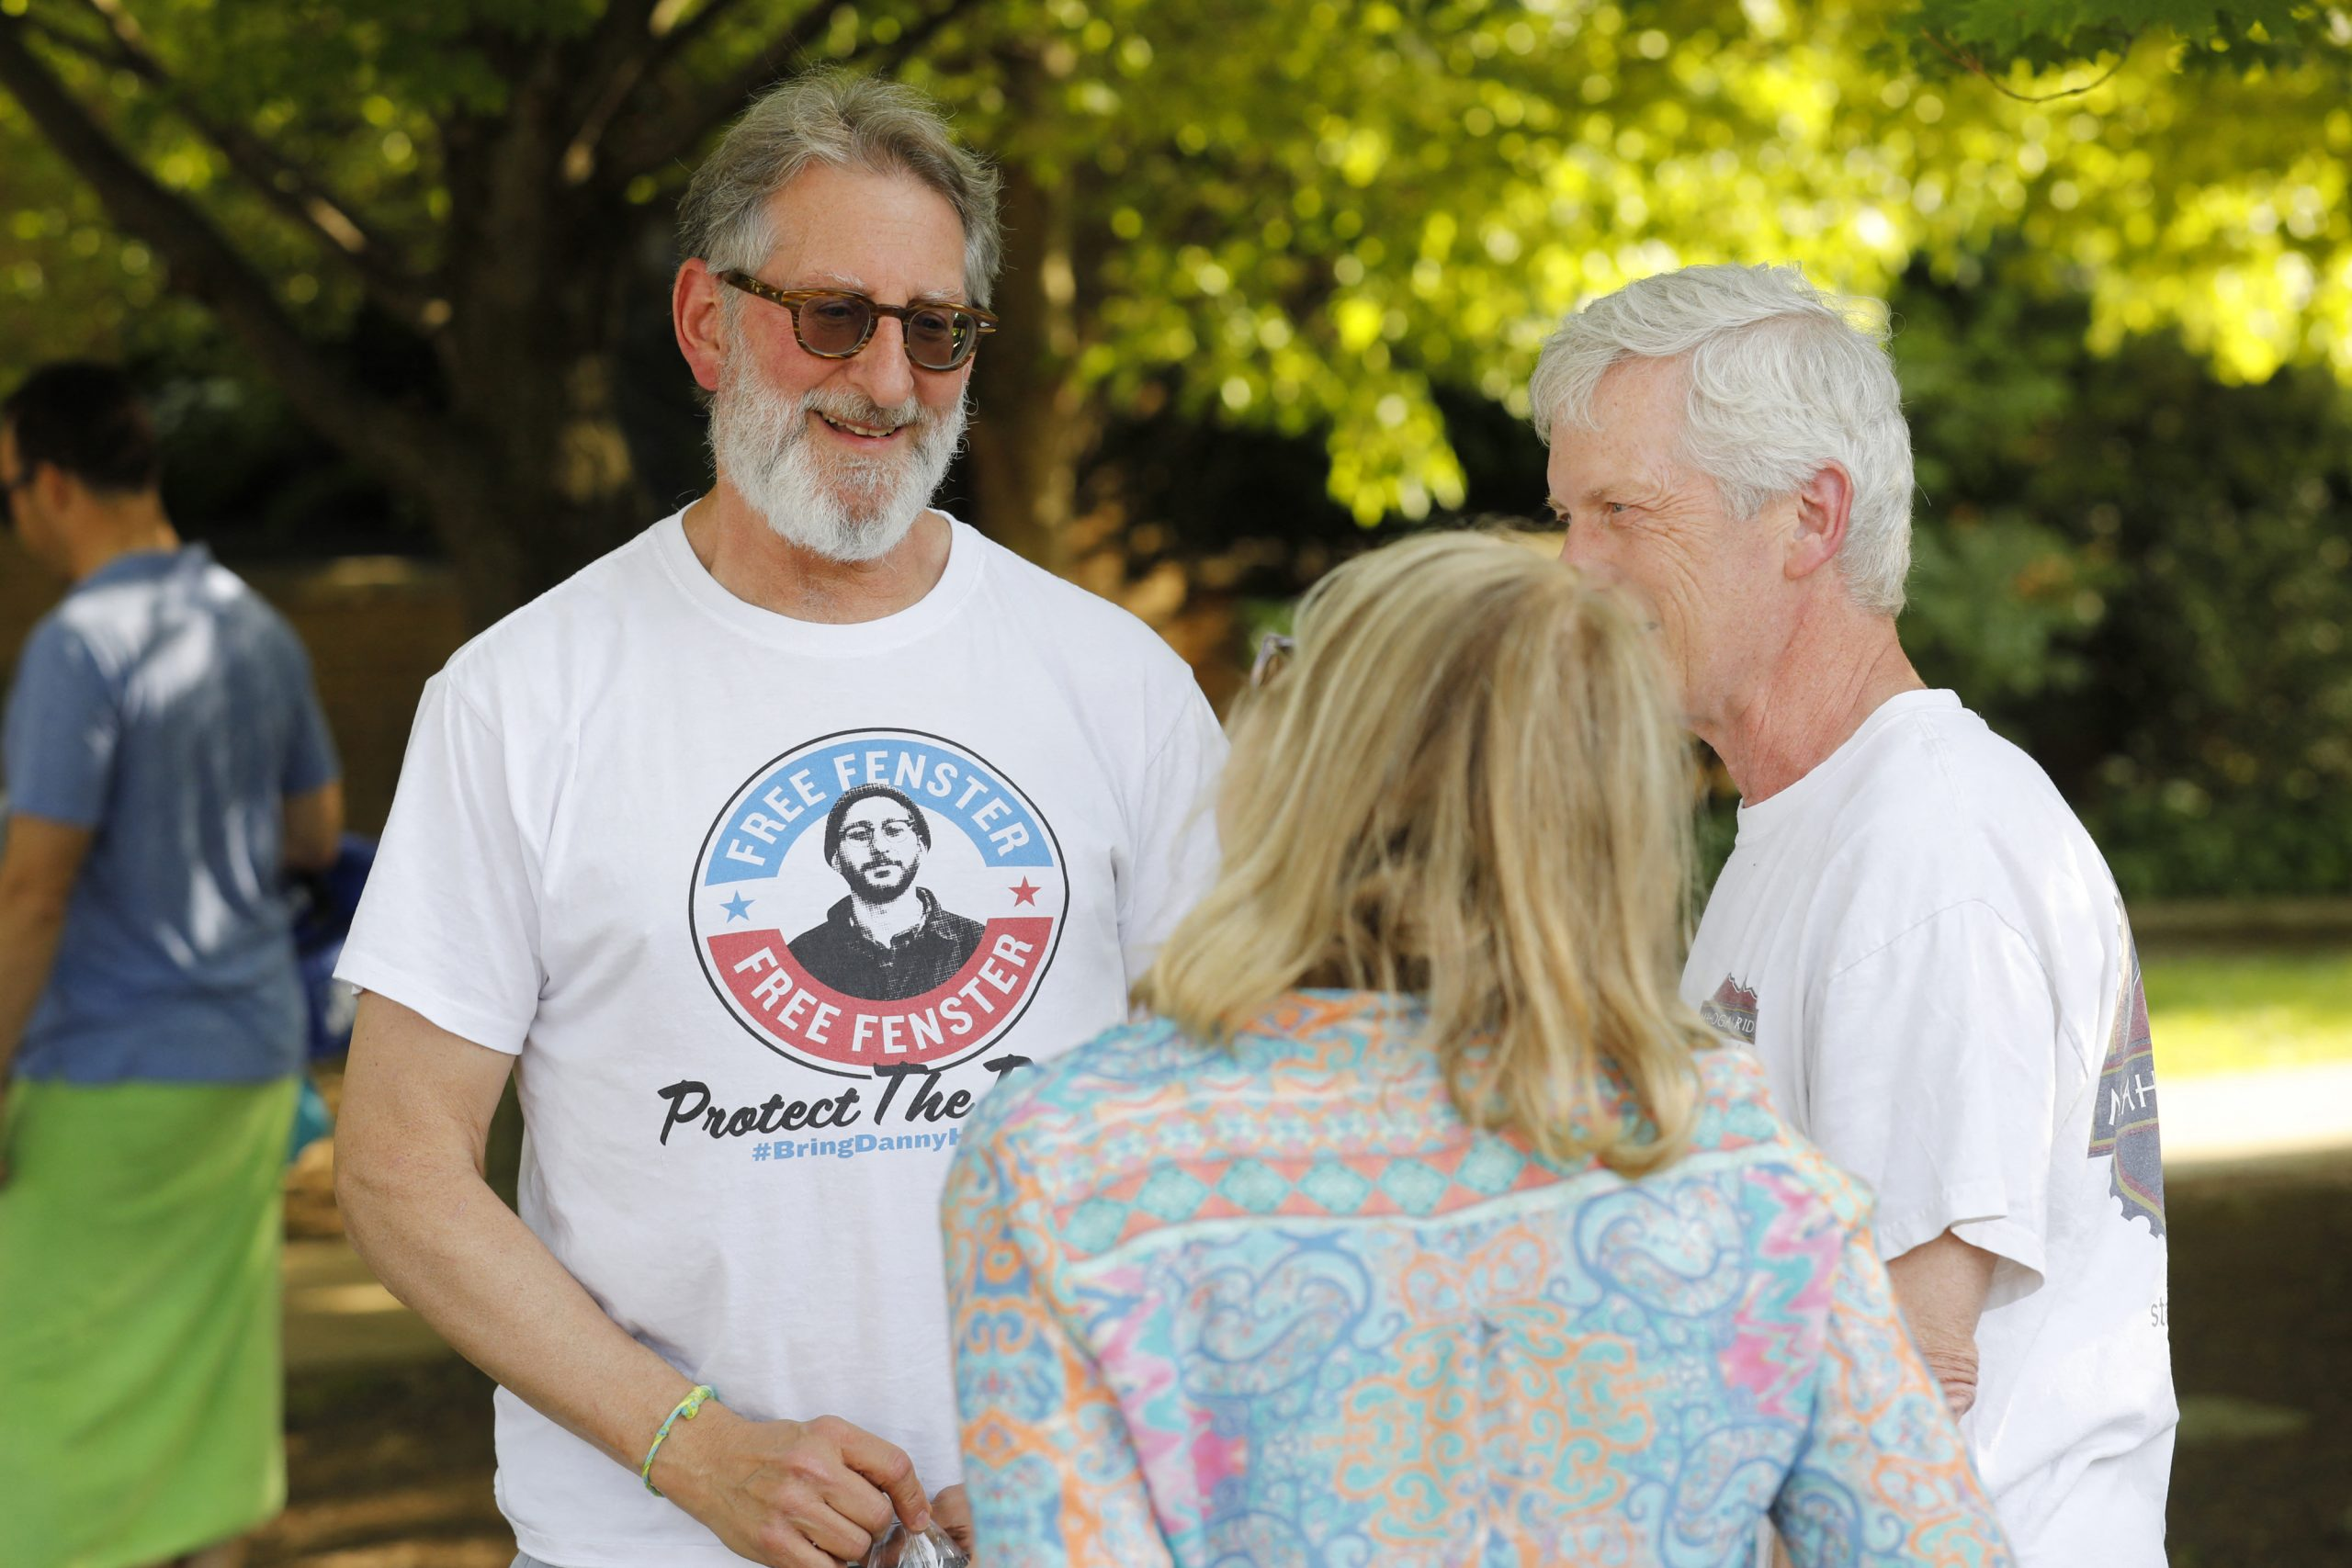 Buddy Fenster (L), father of detained journalist Danny Fenster, speaks to supporters in Huntington Woods, Michigan on June 04, 2021. (AFP)